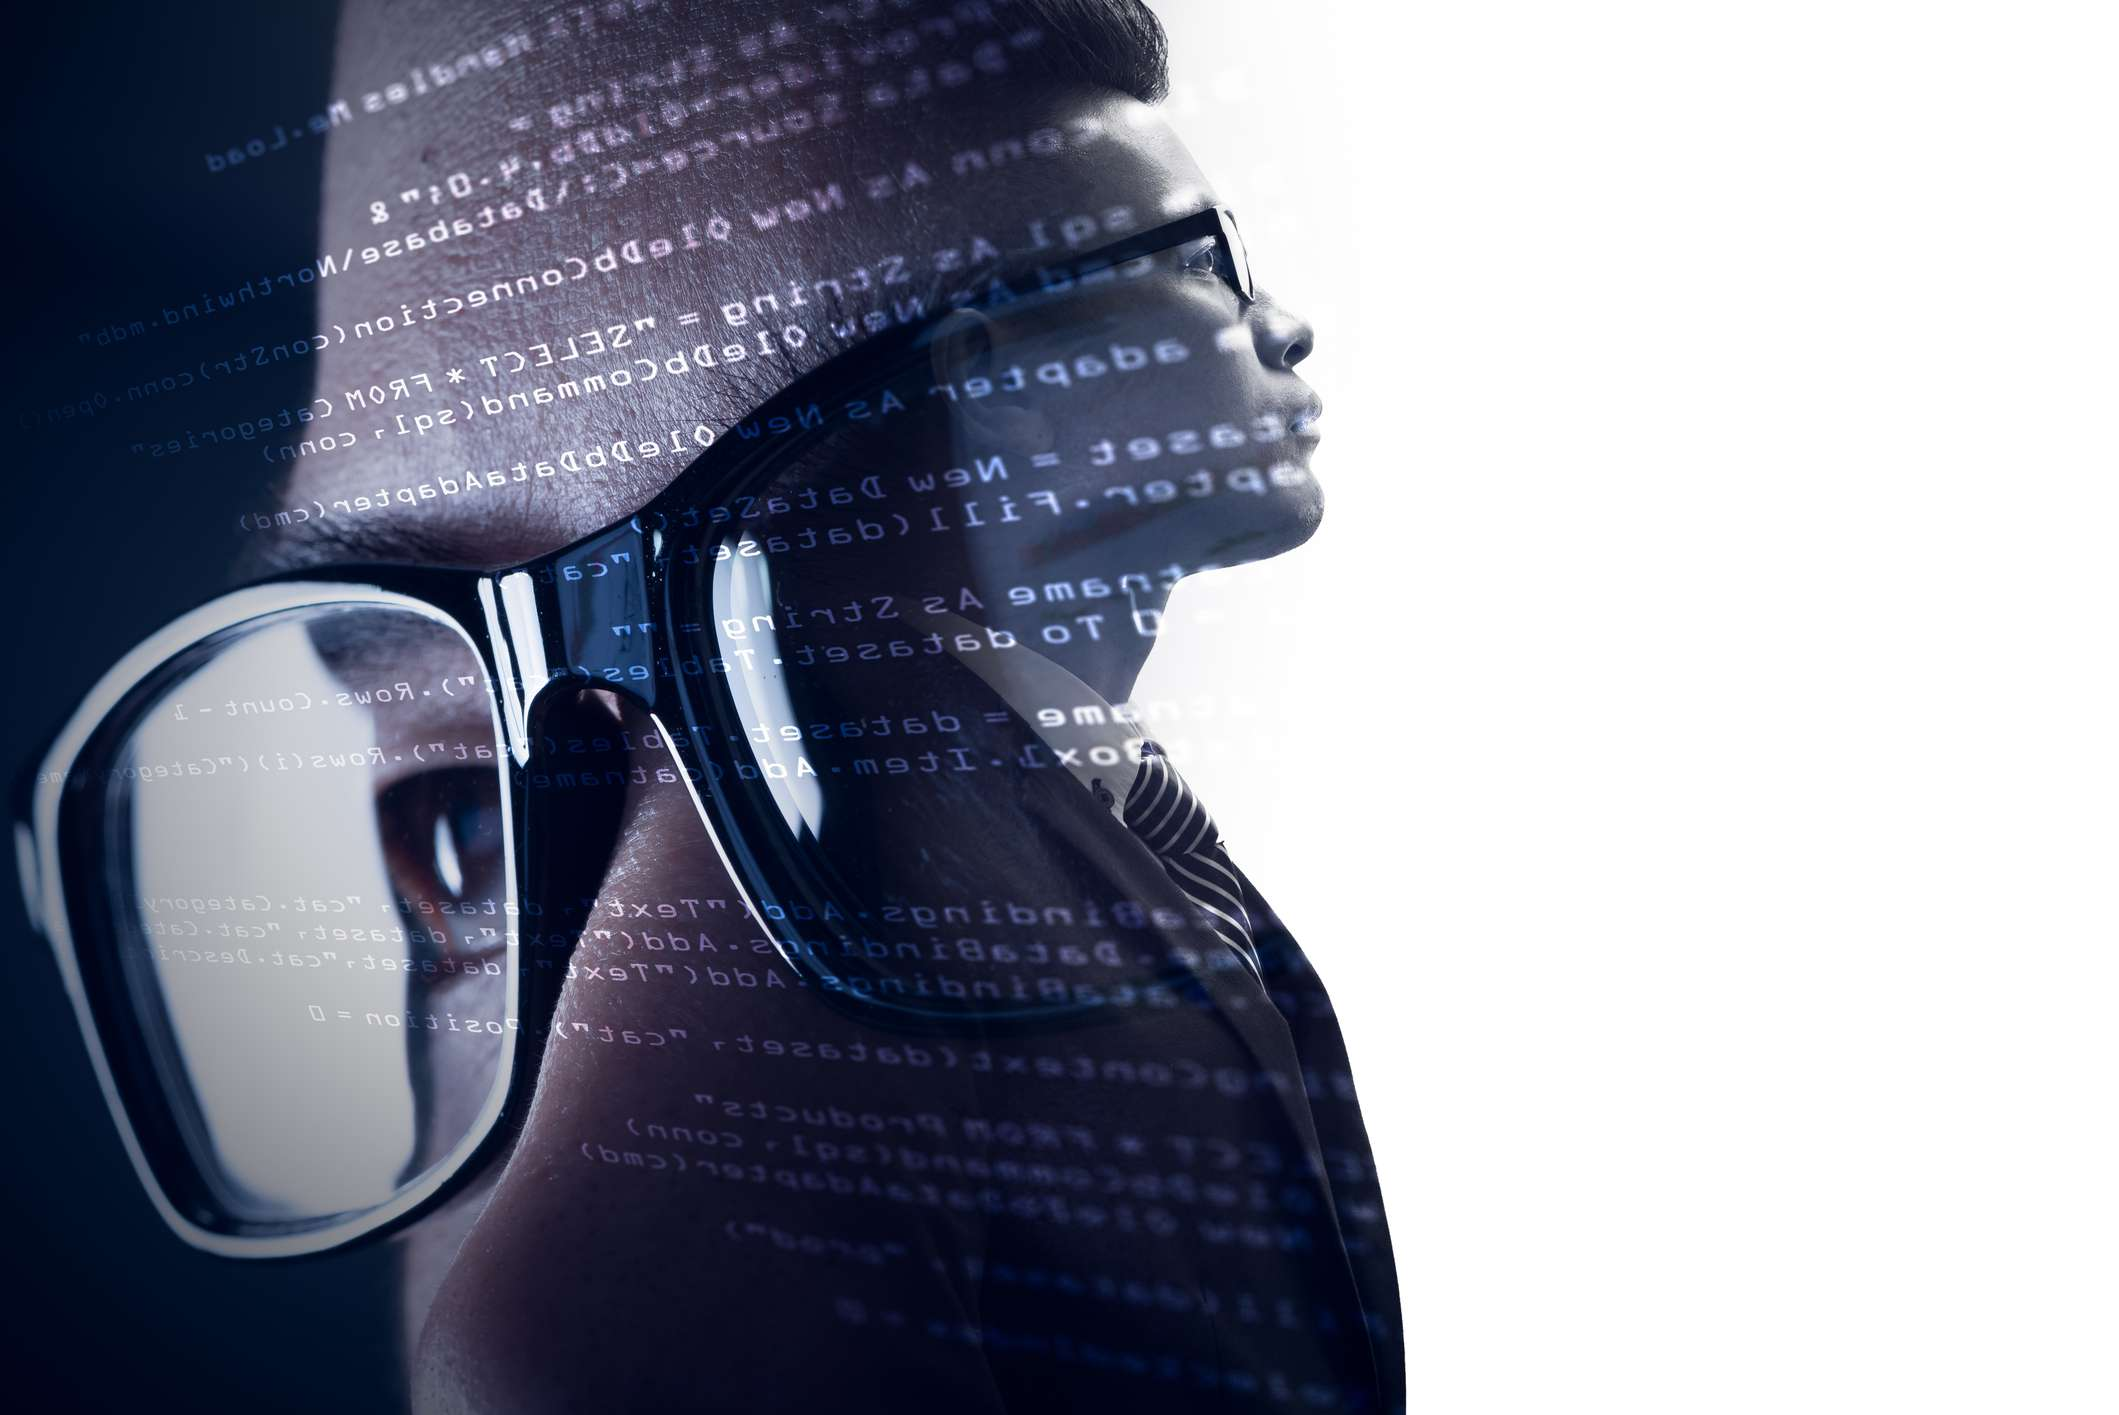 A business person standing with source code and programmer image and copy space. The concept of programming, cyber security, business and internet of things.